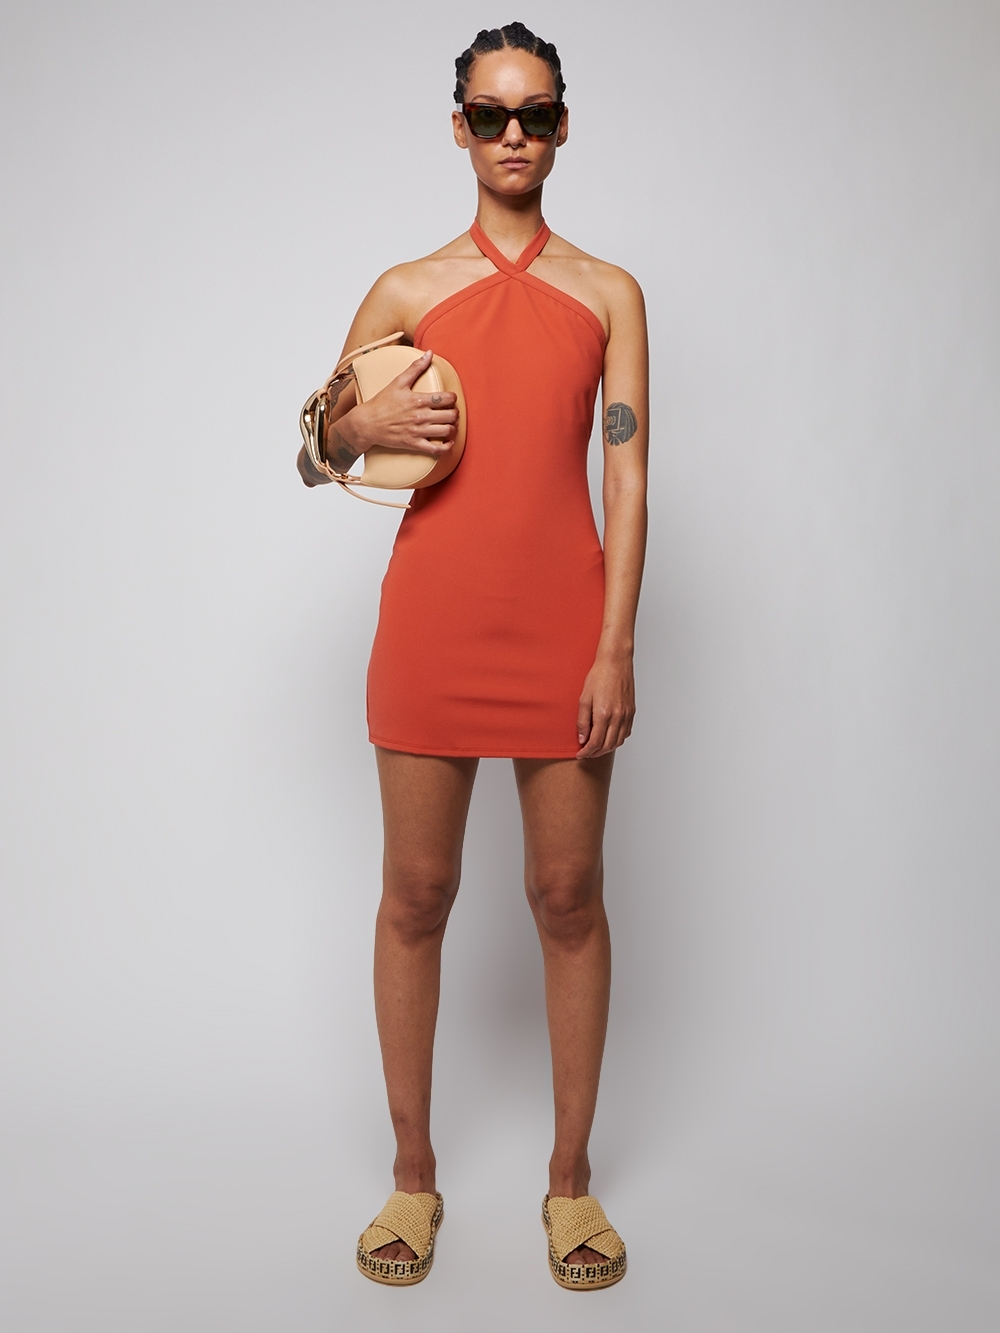 Brigadieros Dress Persimmon by The Webster, available on thewebster.us for $415 Hailey Baldwin Dress Exact Product